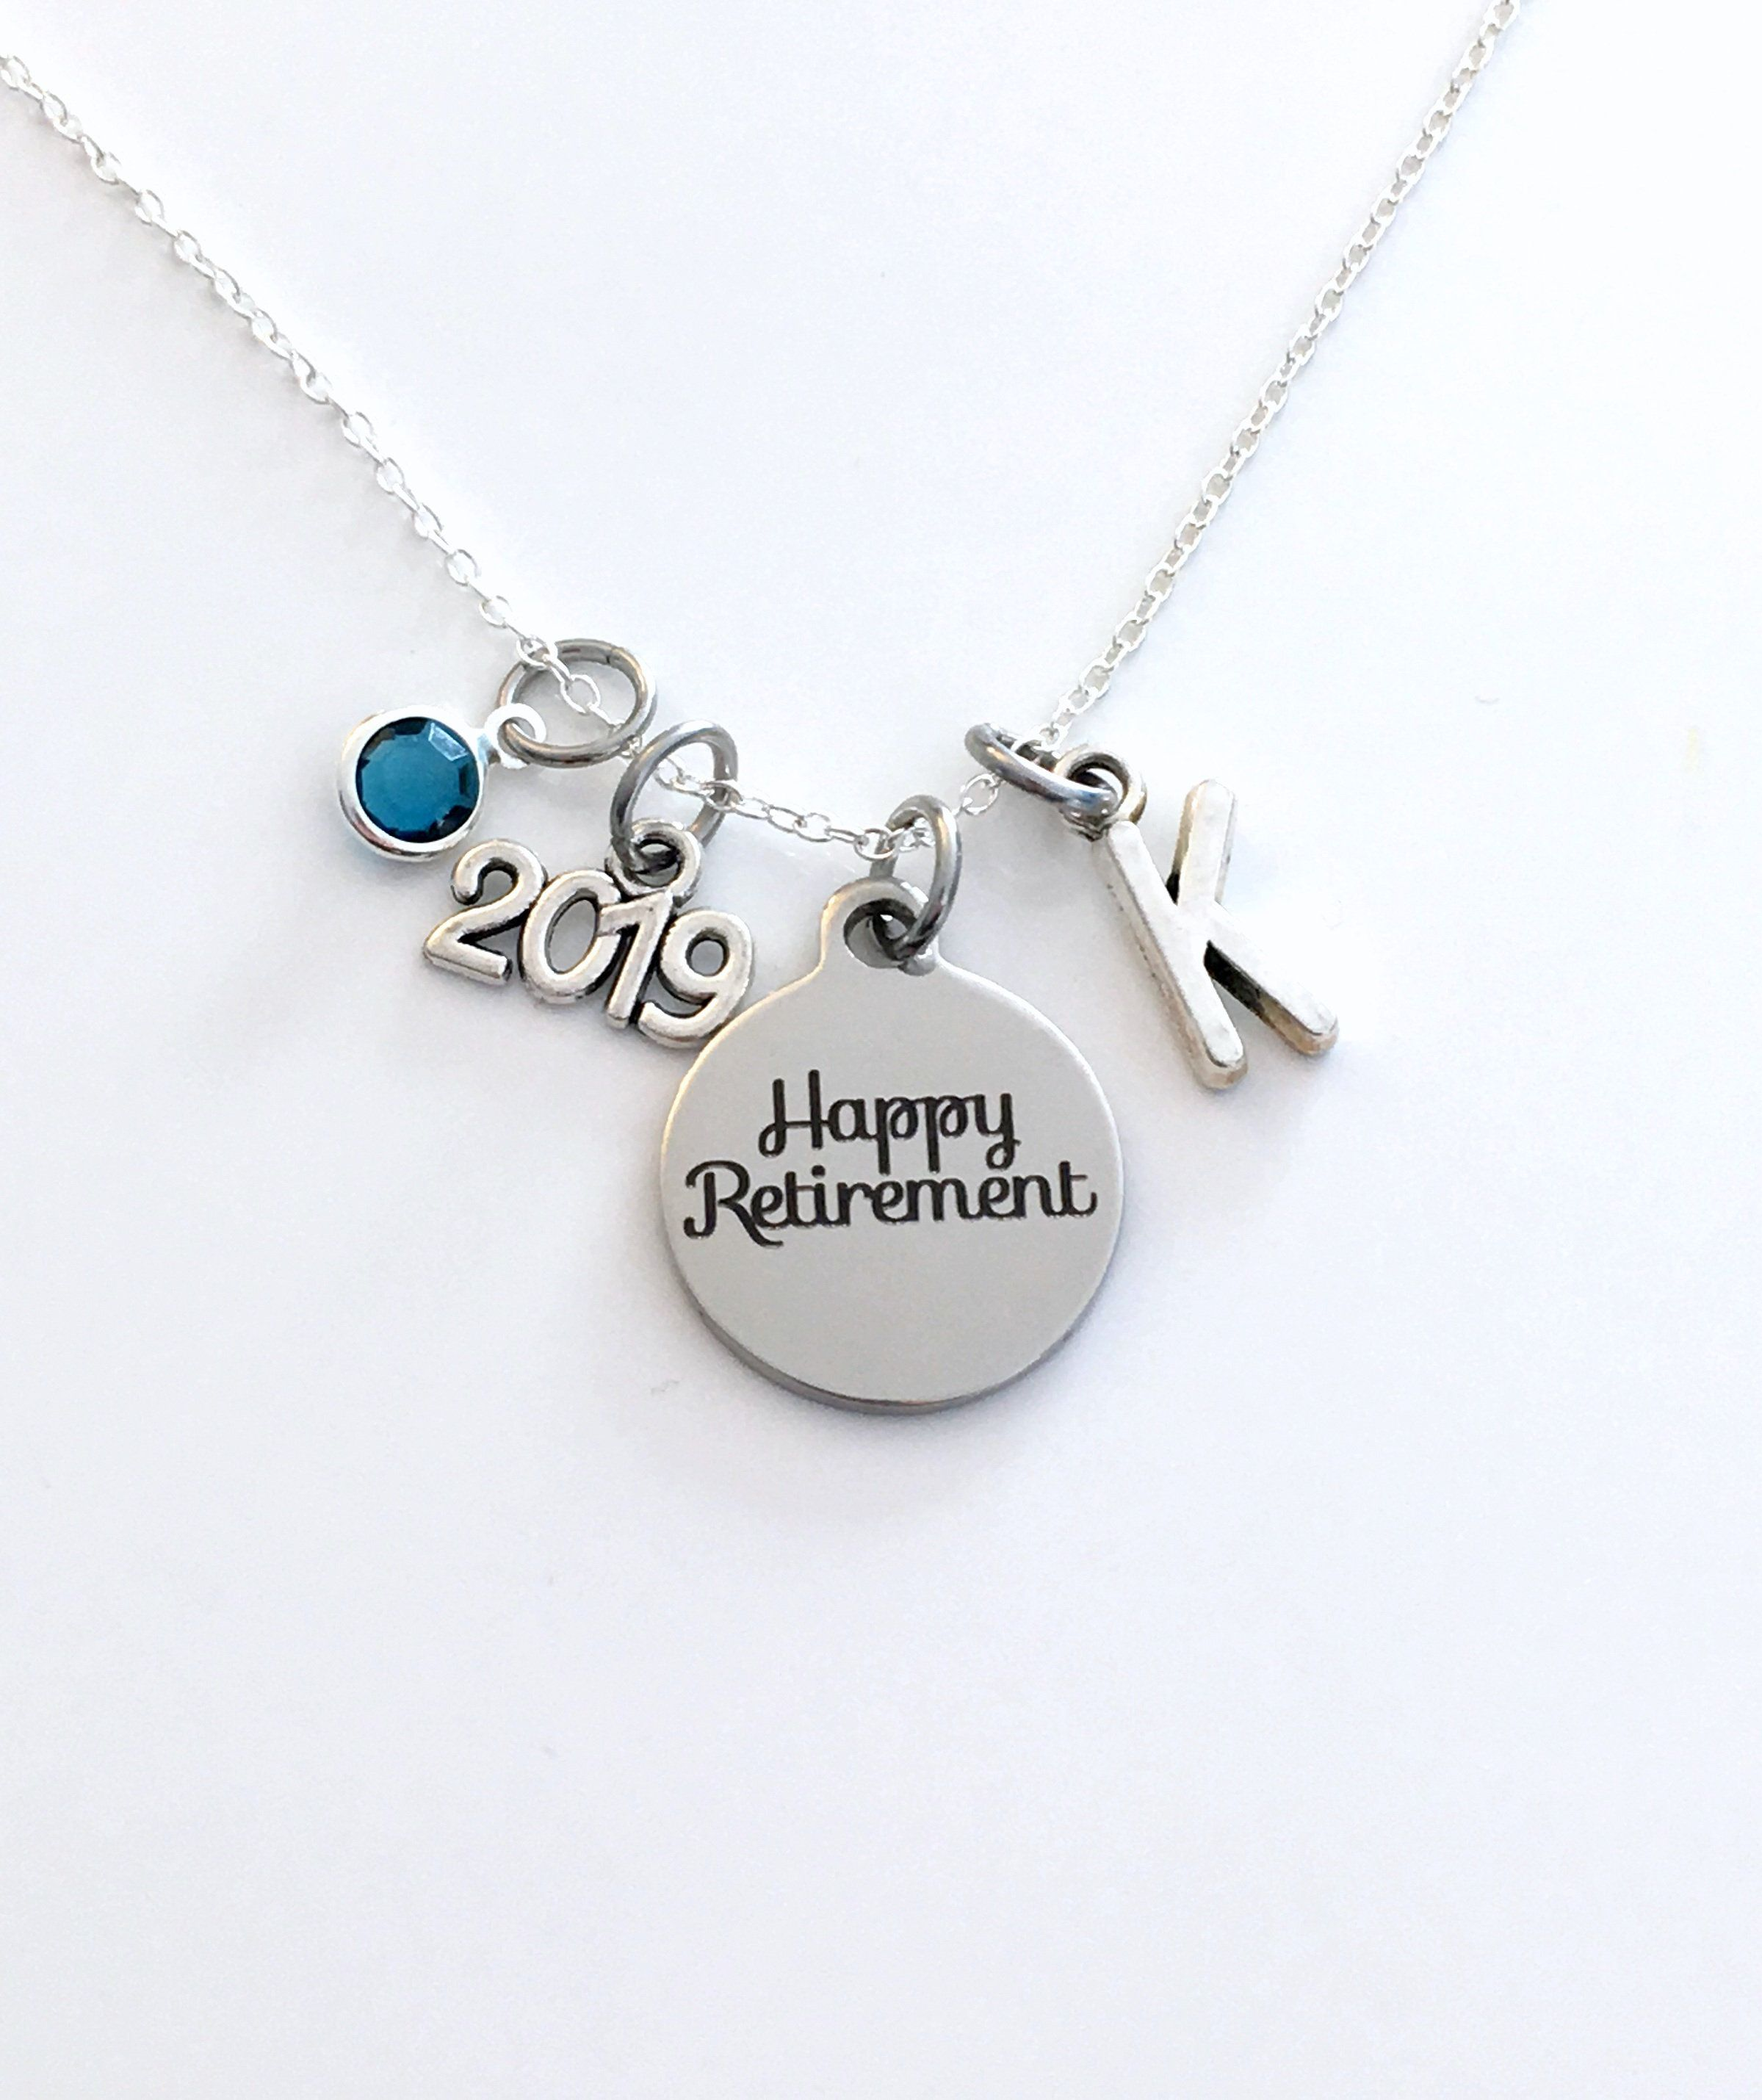 Best Gifts 2020 For Her Retirement Jewelry, Women's Necklace, 2019 Gift for Best Friend